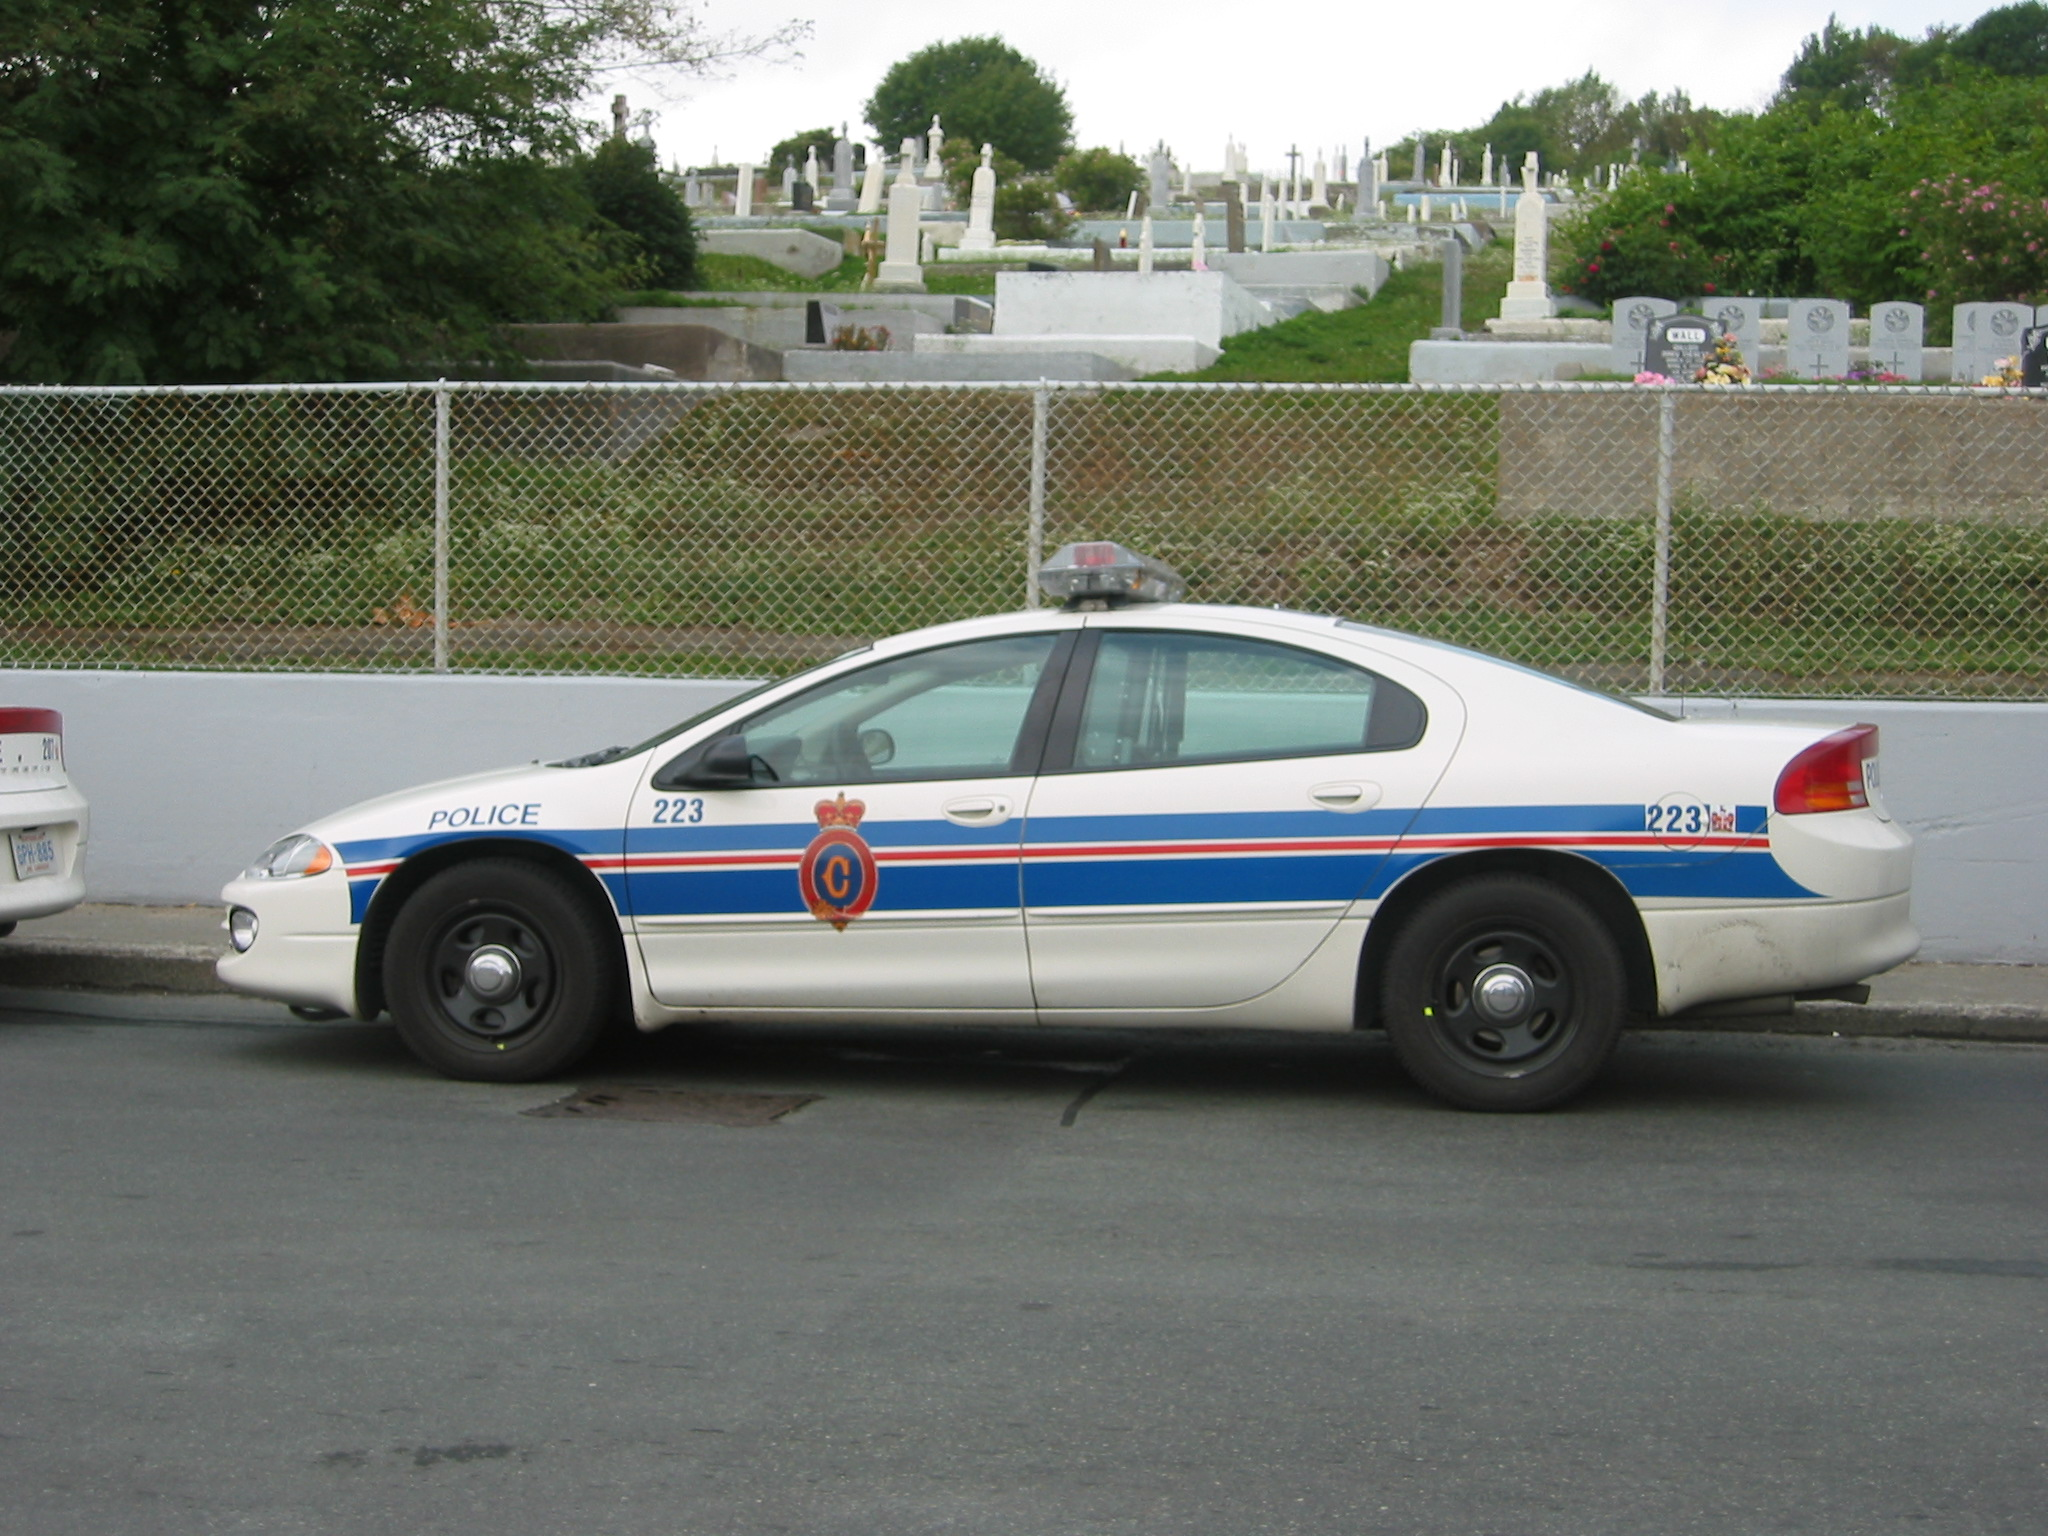 Royal_Newfoundland_Constabulatory_Dodge_Intrepid_police_car.jpg